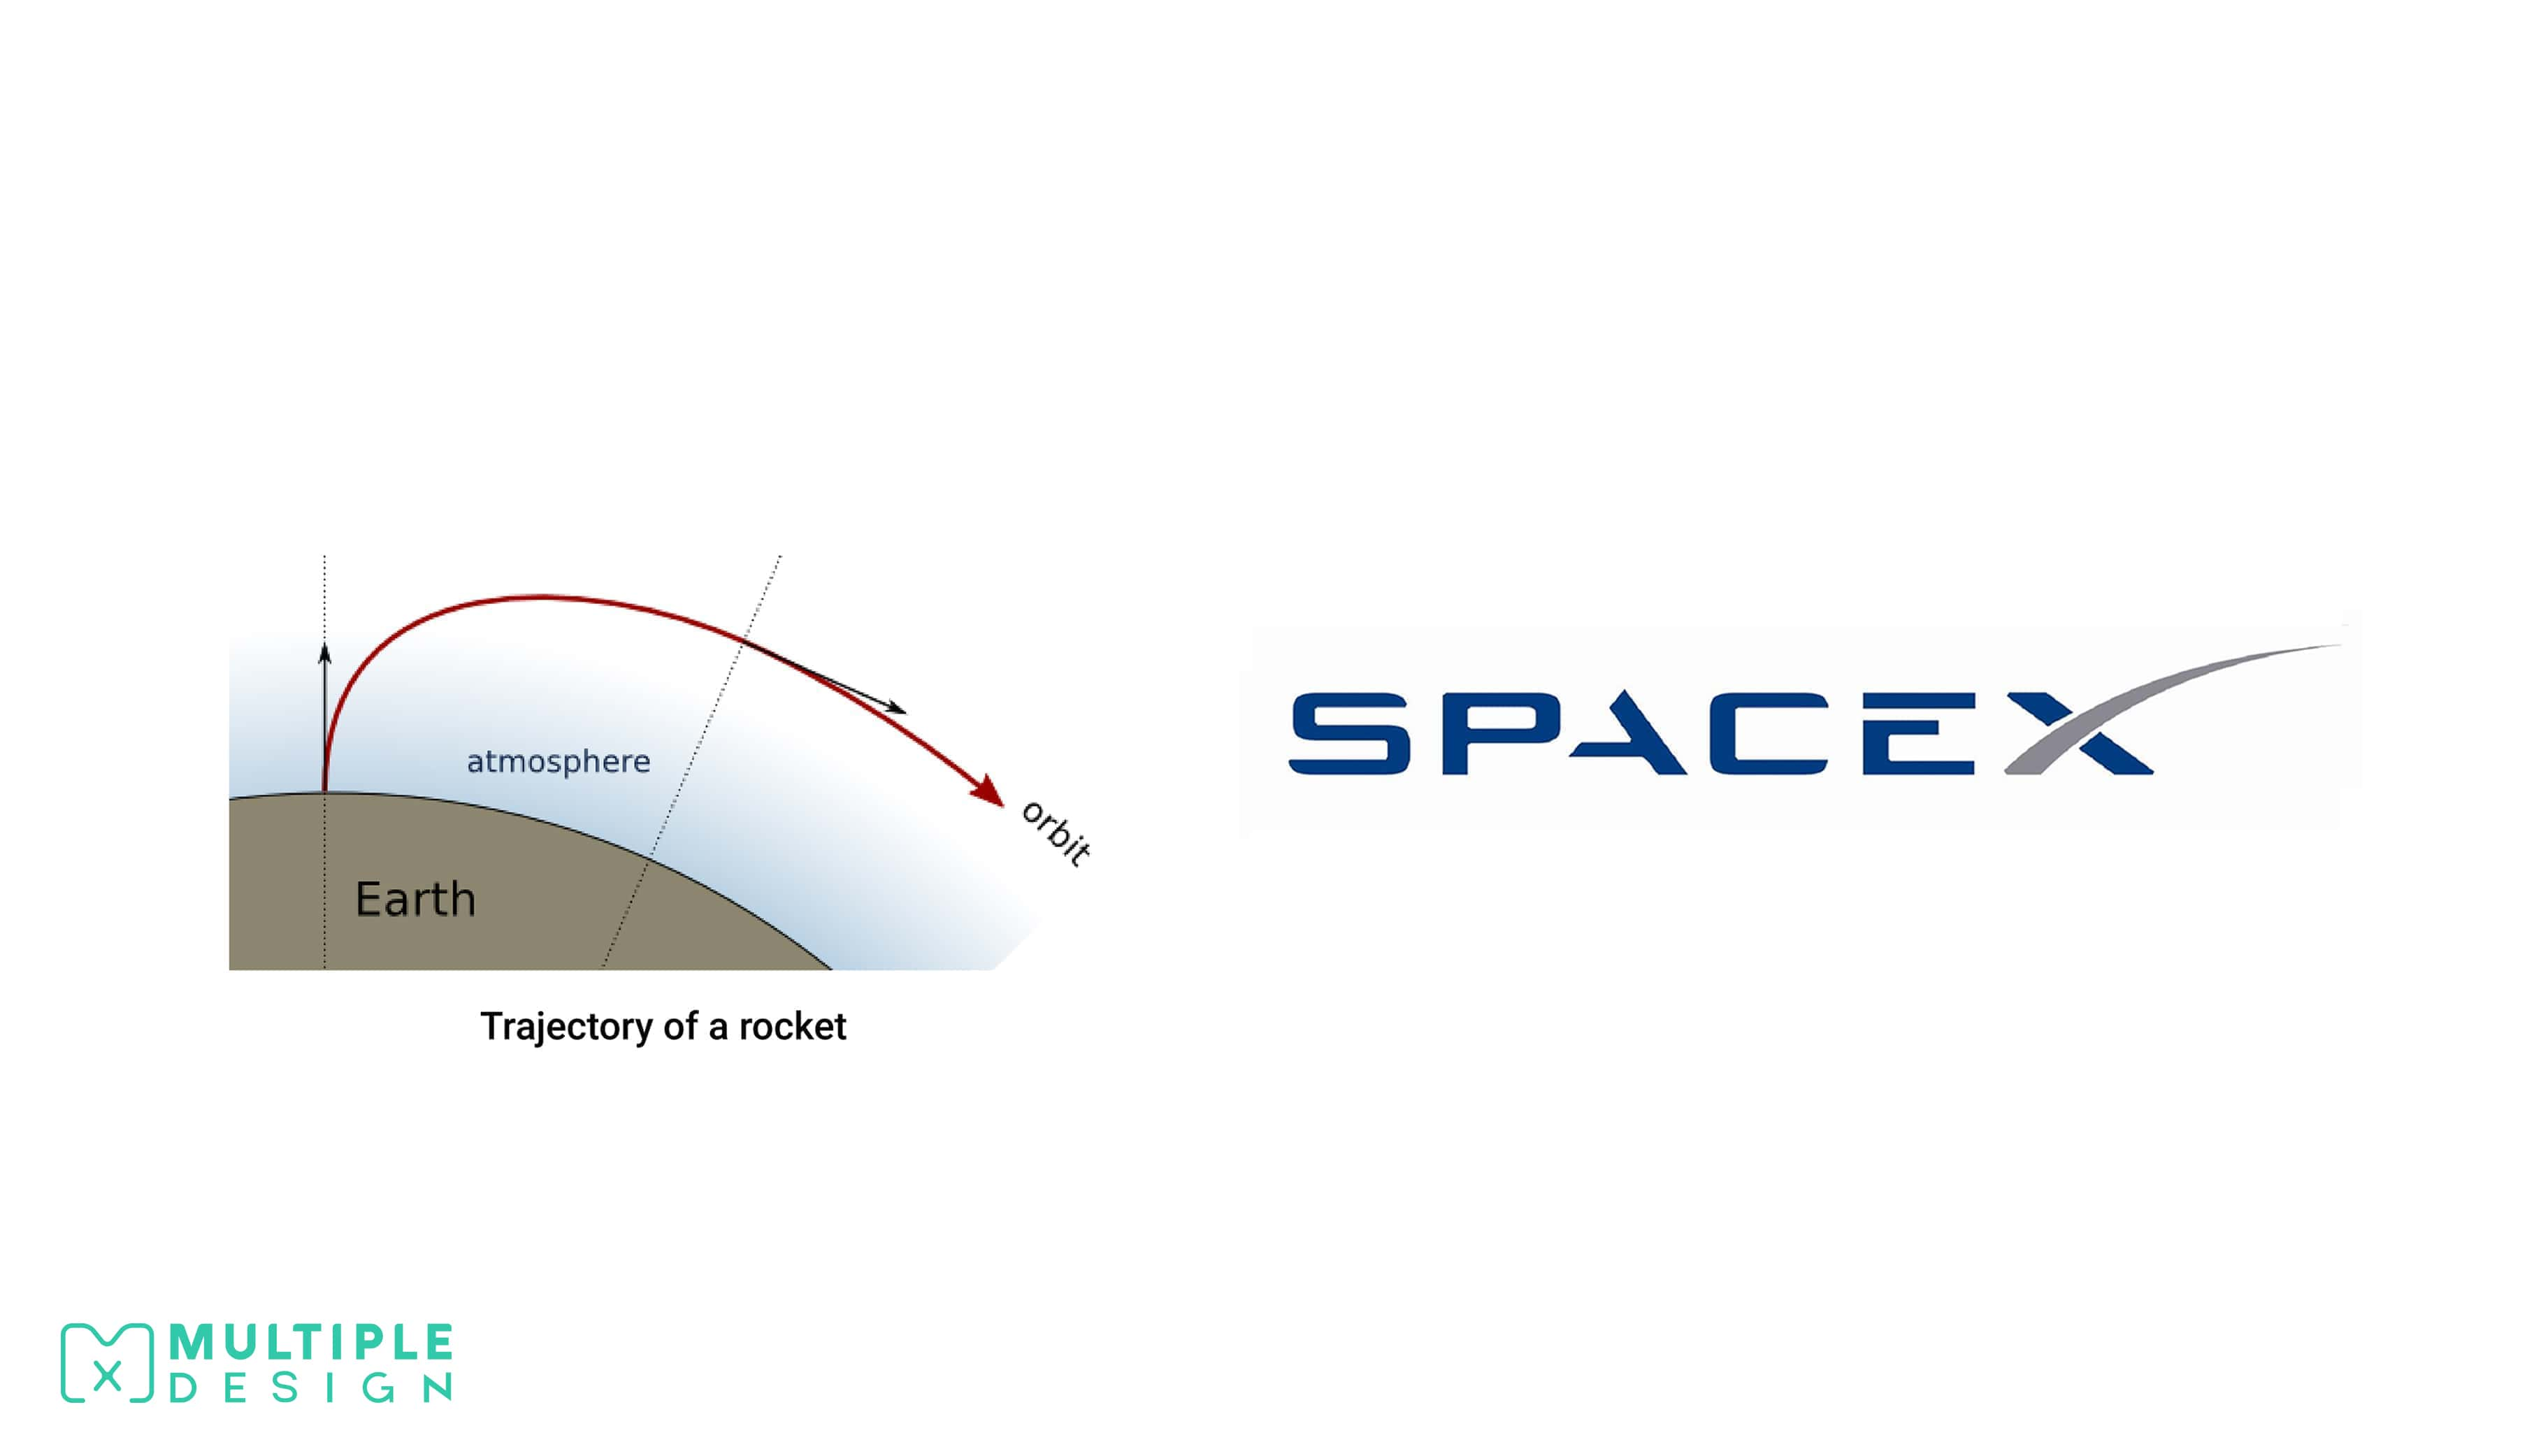 SpaceX logo, trajectory of a rocket